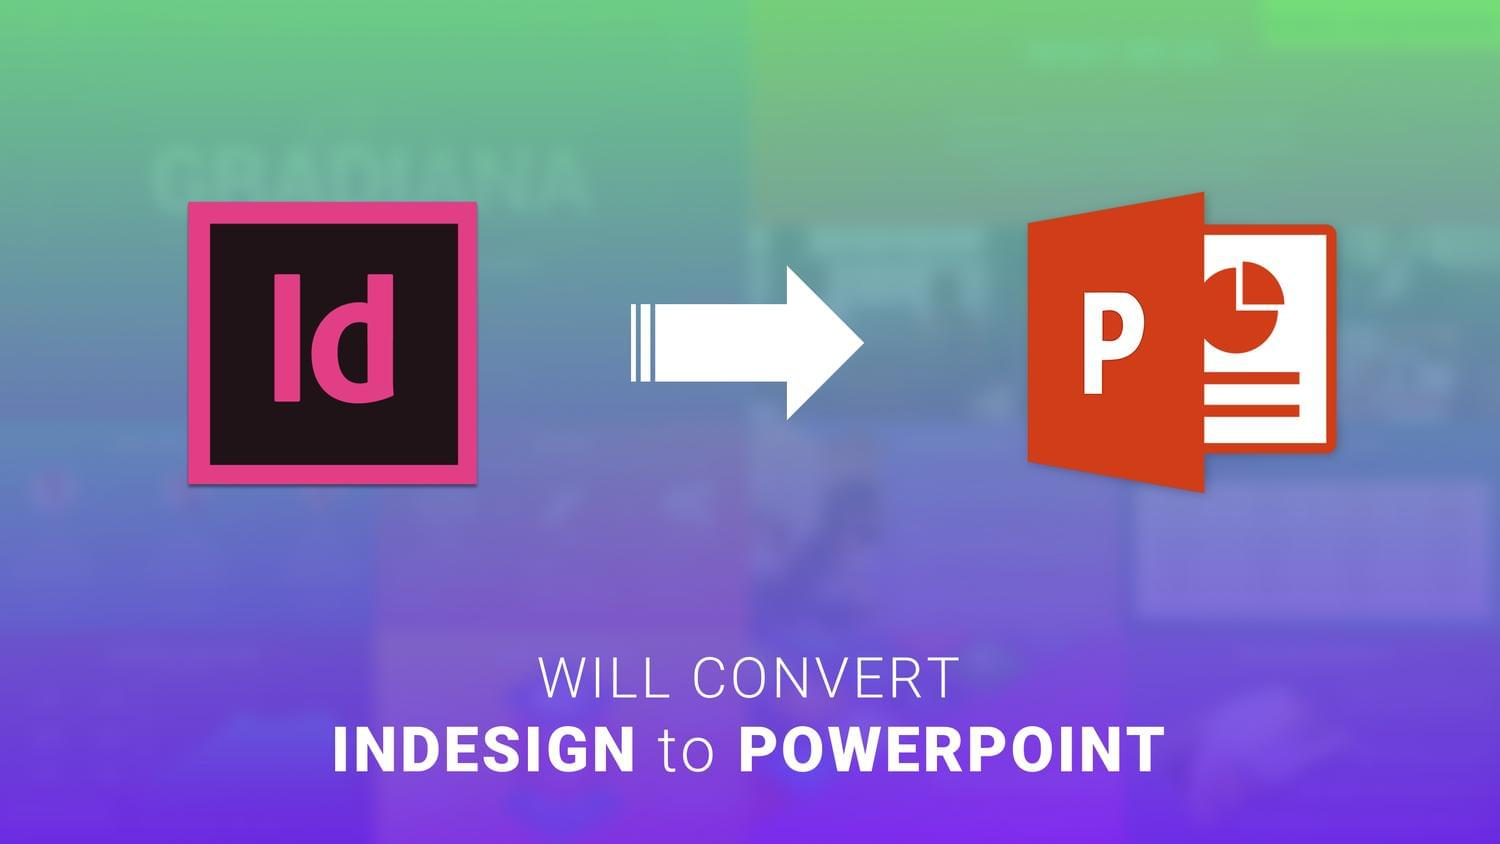 Convert InDesign To Microsoft PowerPoint by arvaone - 113585